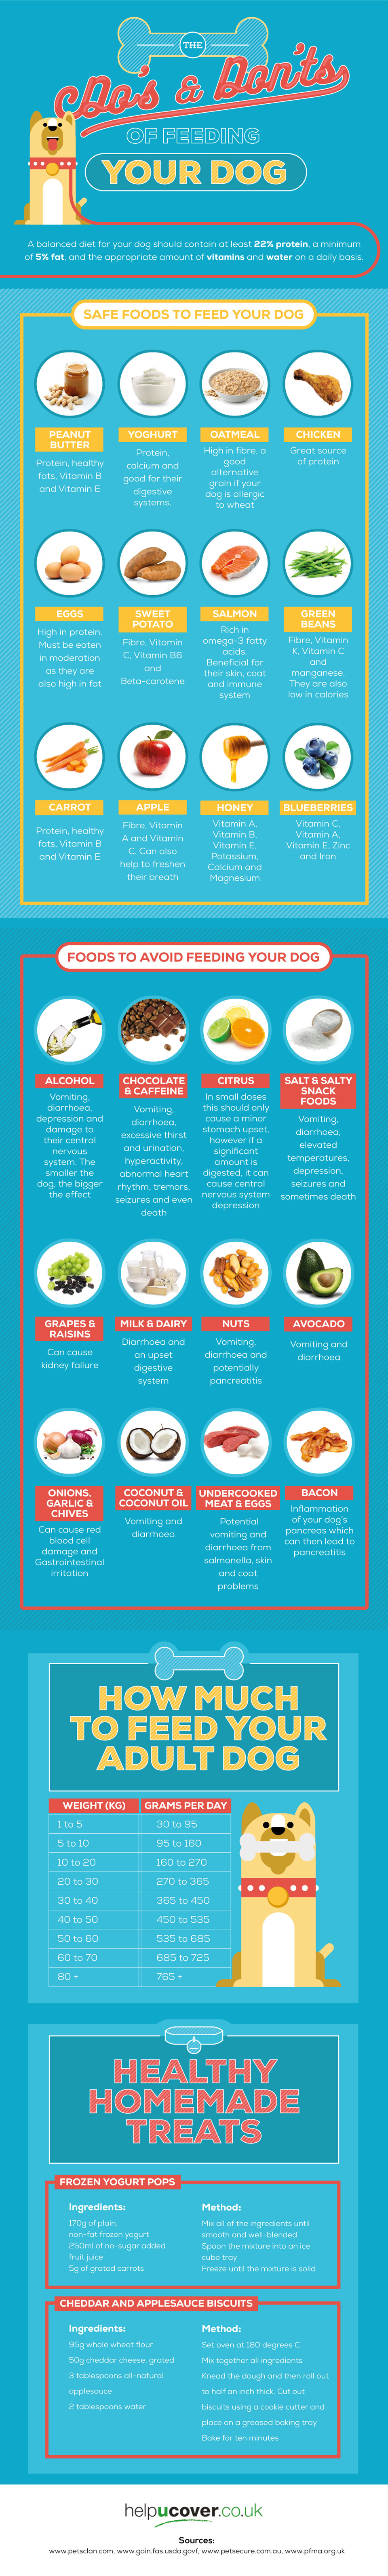 The Comprehensive List of Good & Bad Foods for Your Dog - Infographic